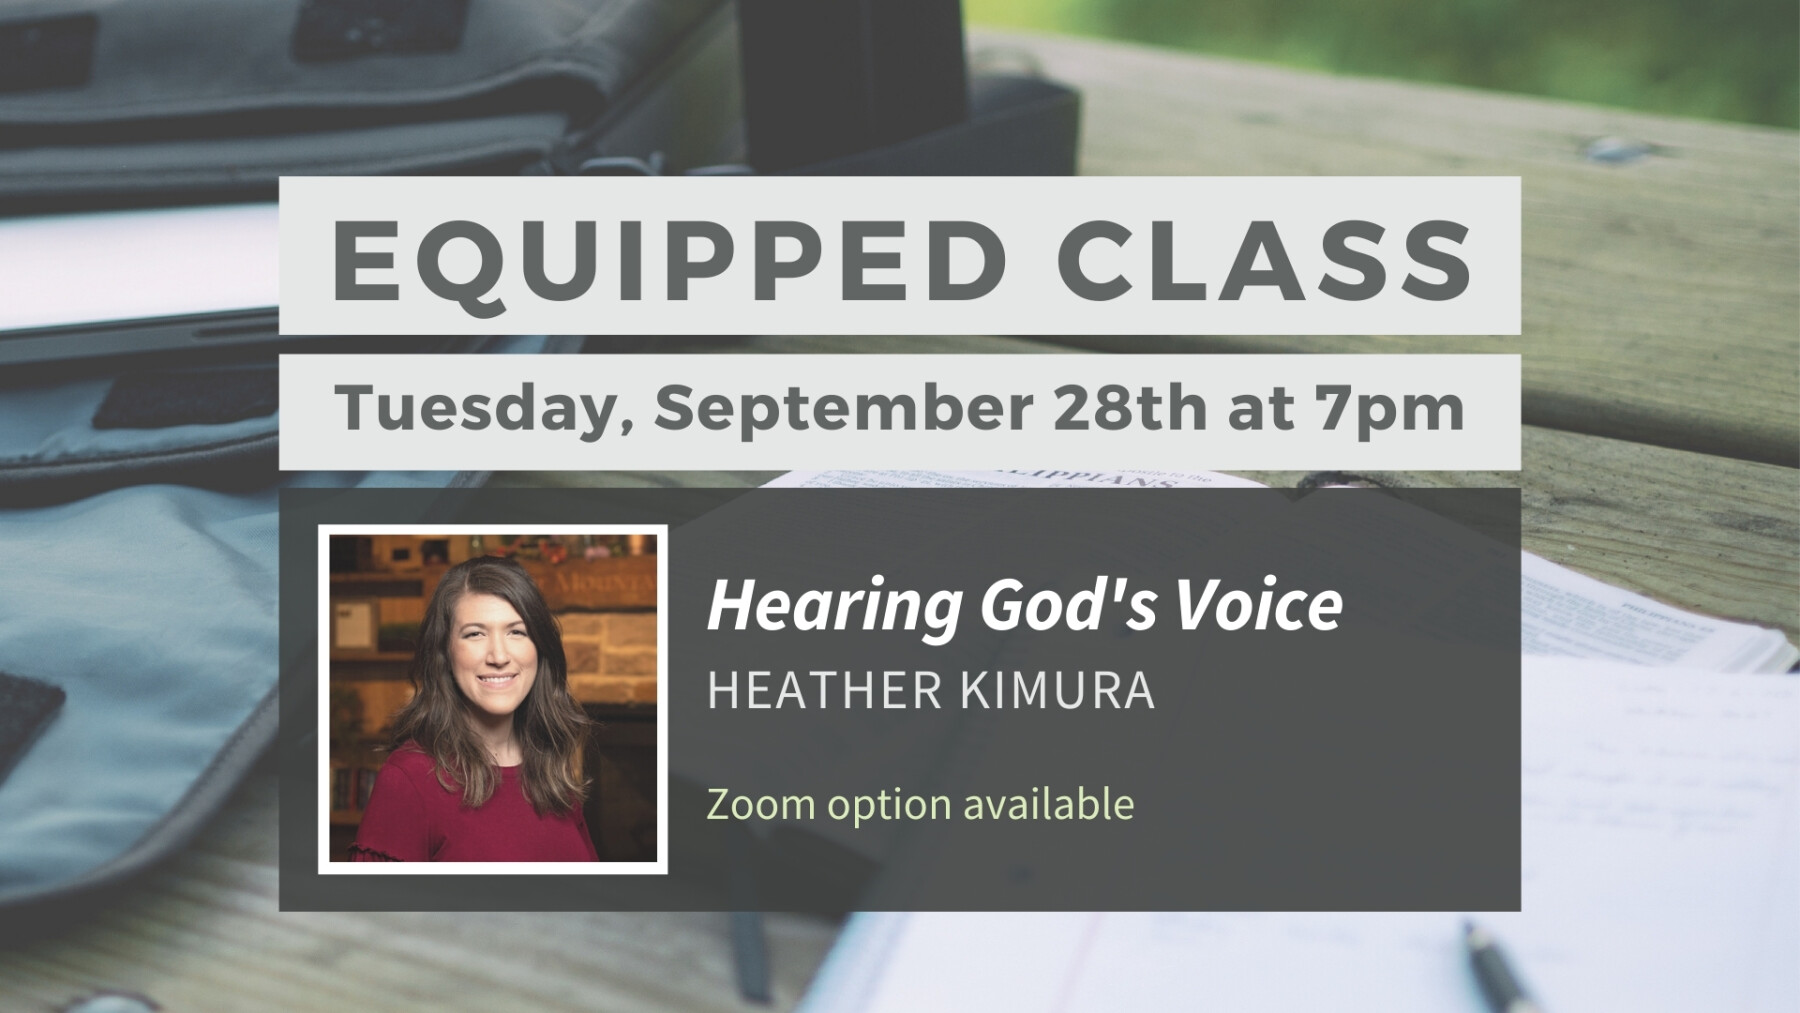 Equipped Class: Hearing God's Voice - Tuesday, September 28th at 7pm